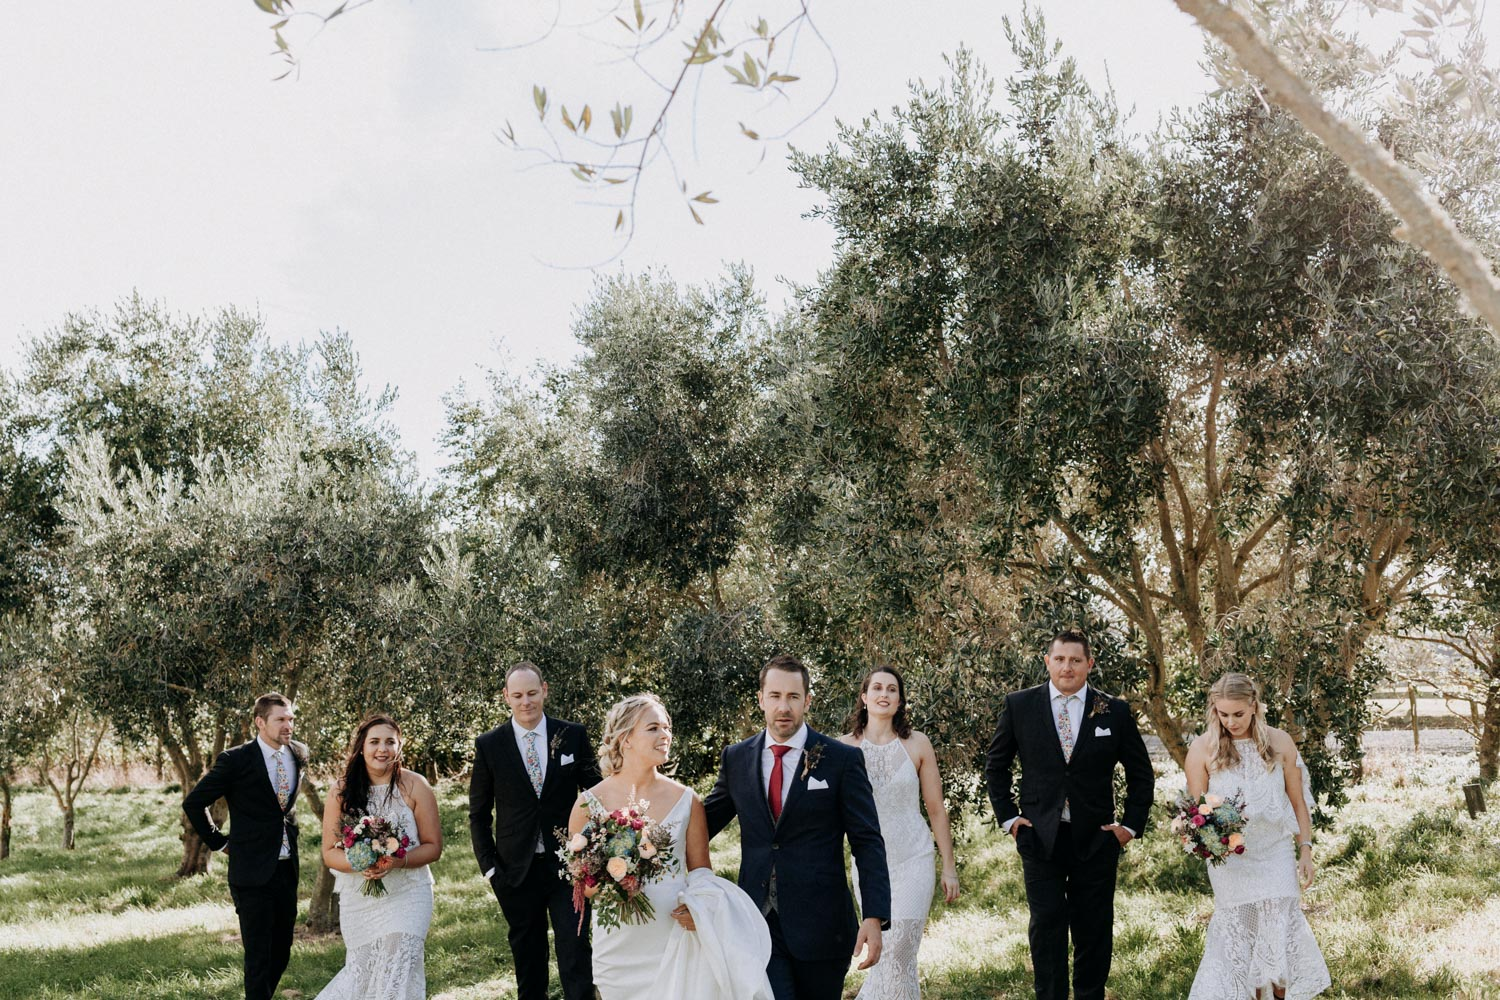 olive-grove-bridal-shoot-9.jpg